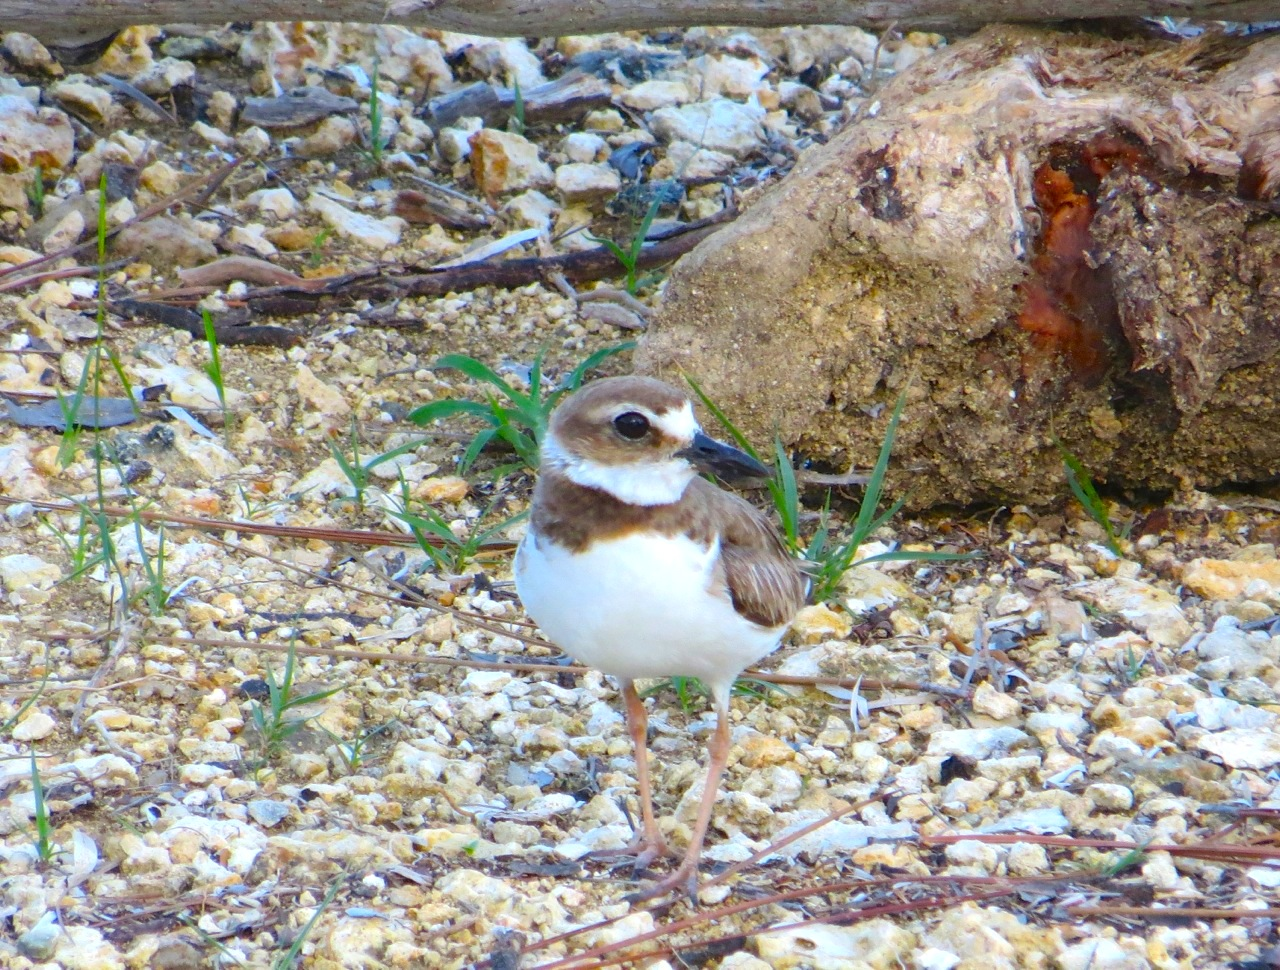 Nettie's Point, Abaco - male Wilson's Plover guards a nest